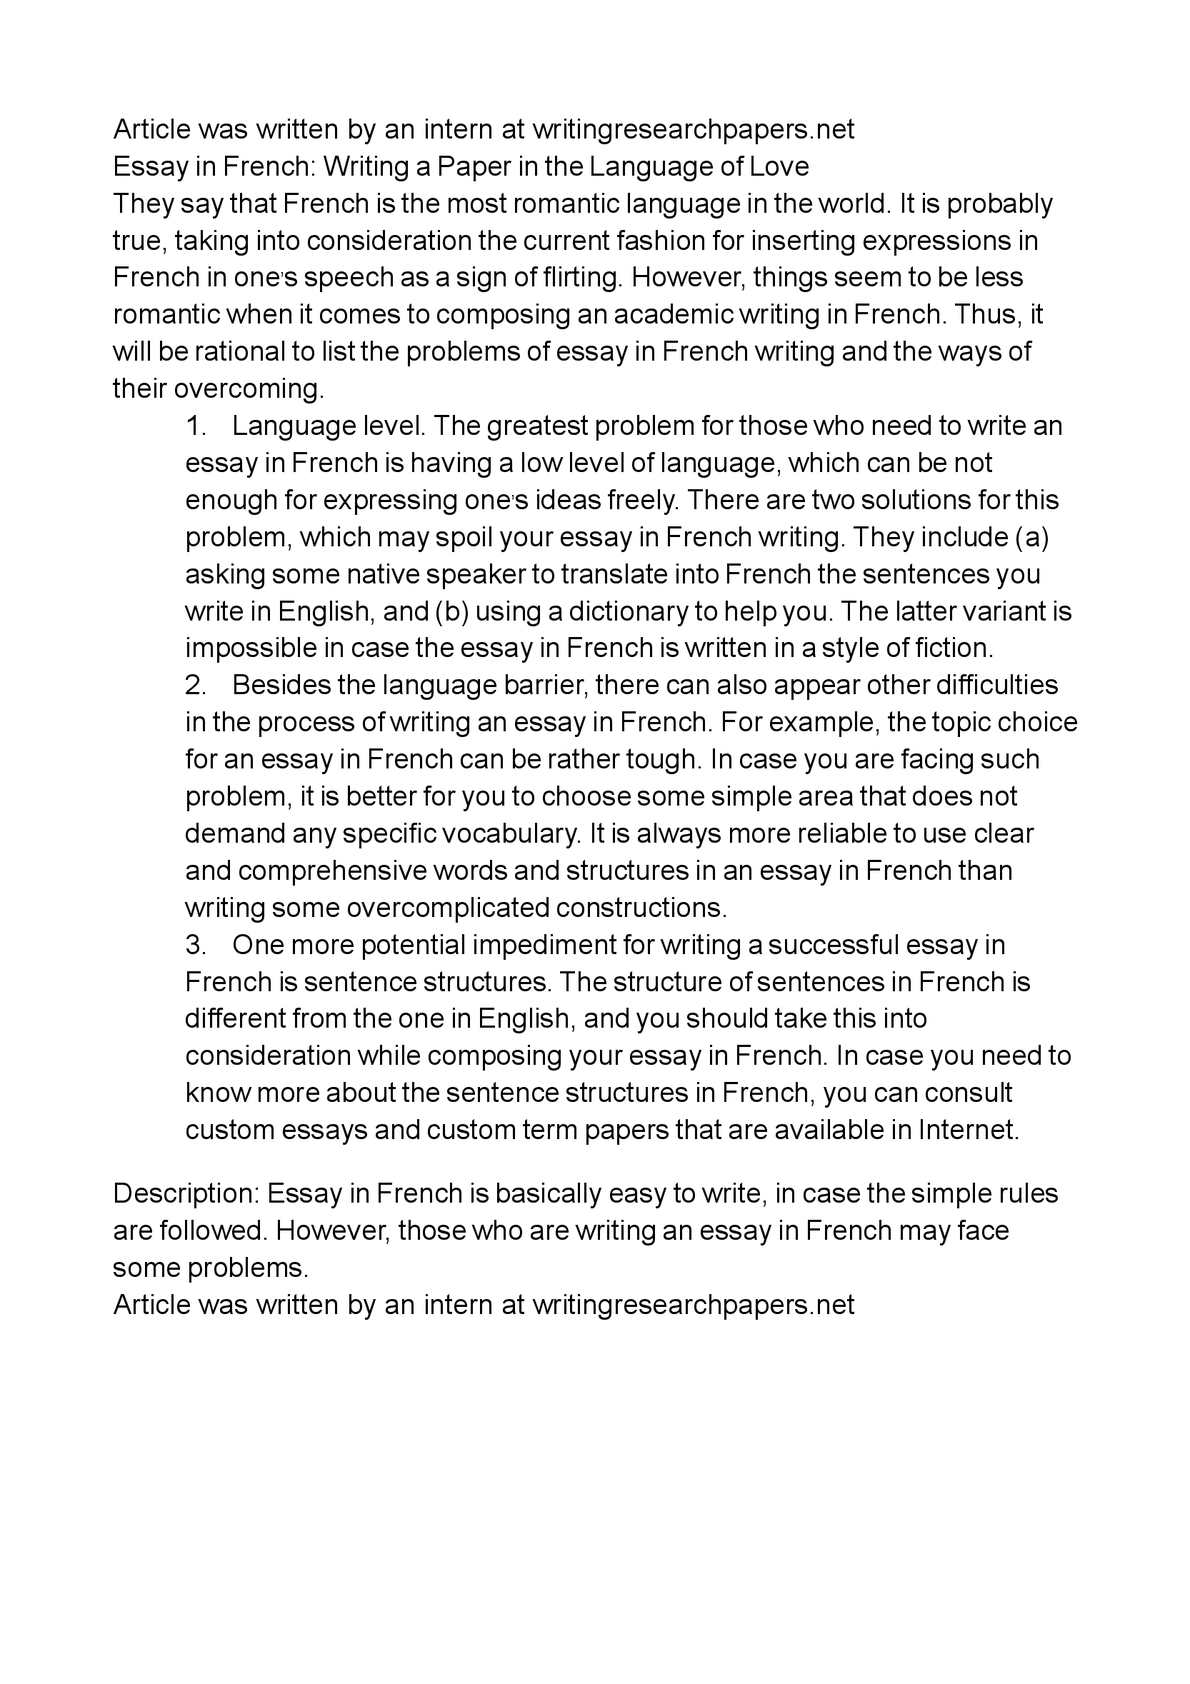 essay in french writing a paper in the language of love